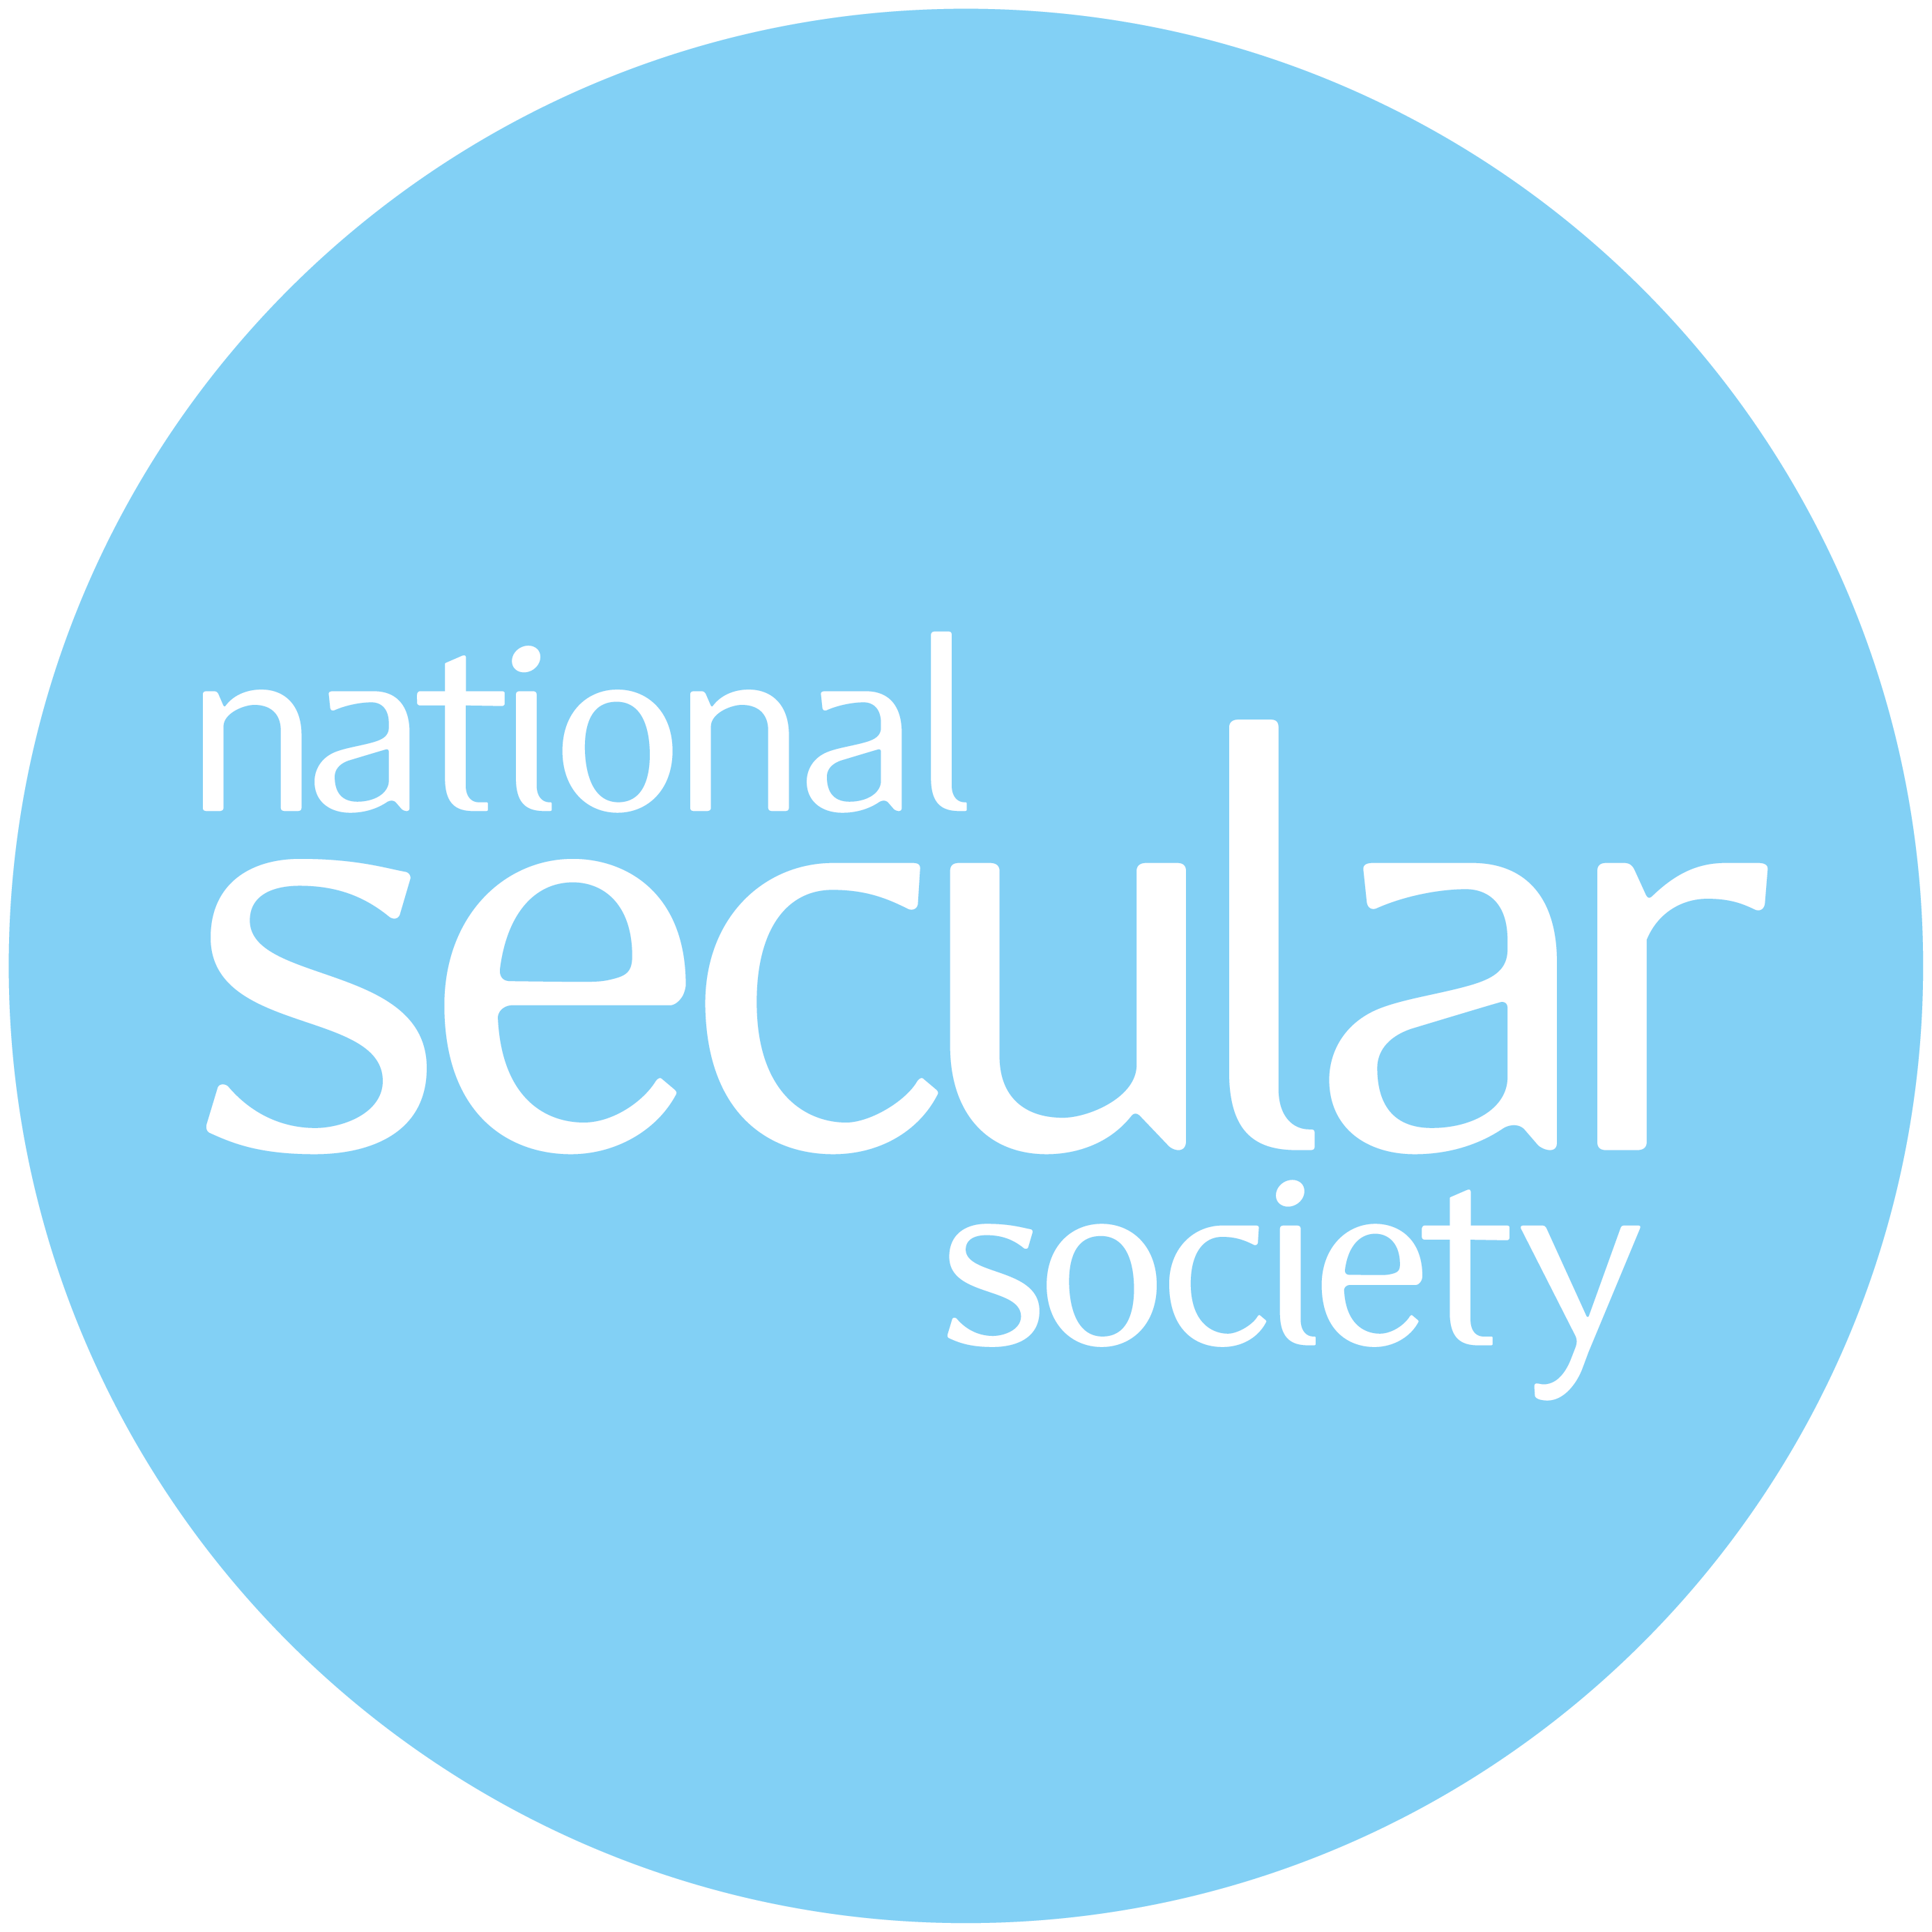 The National Secular Society